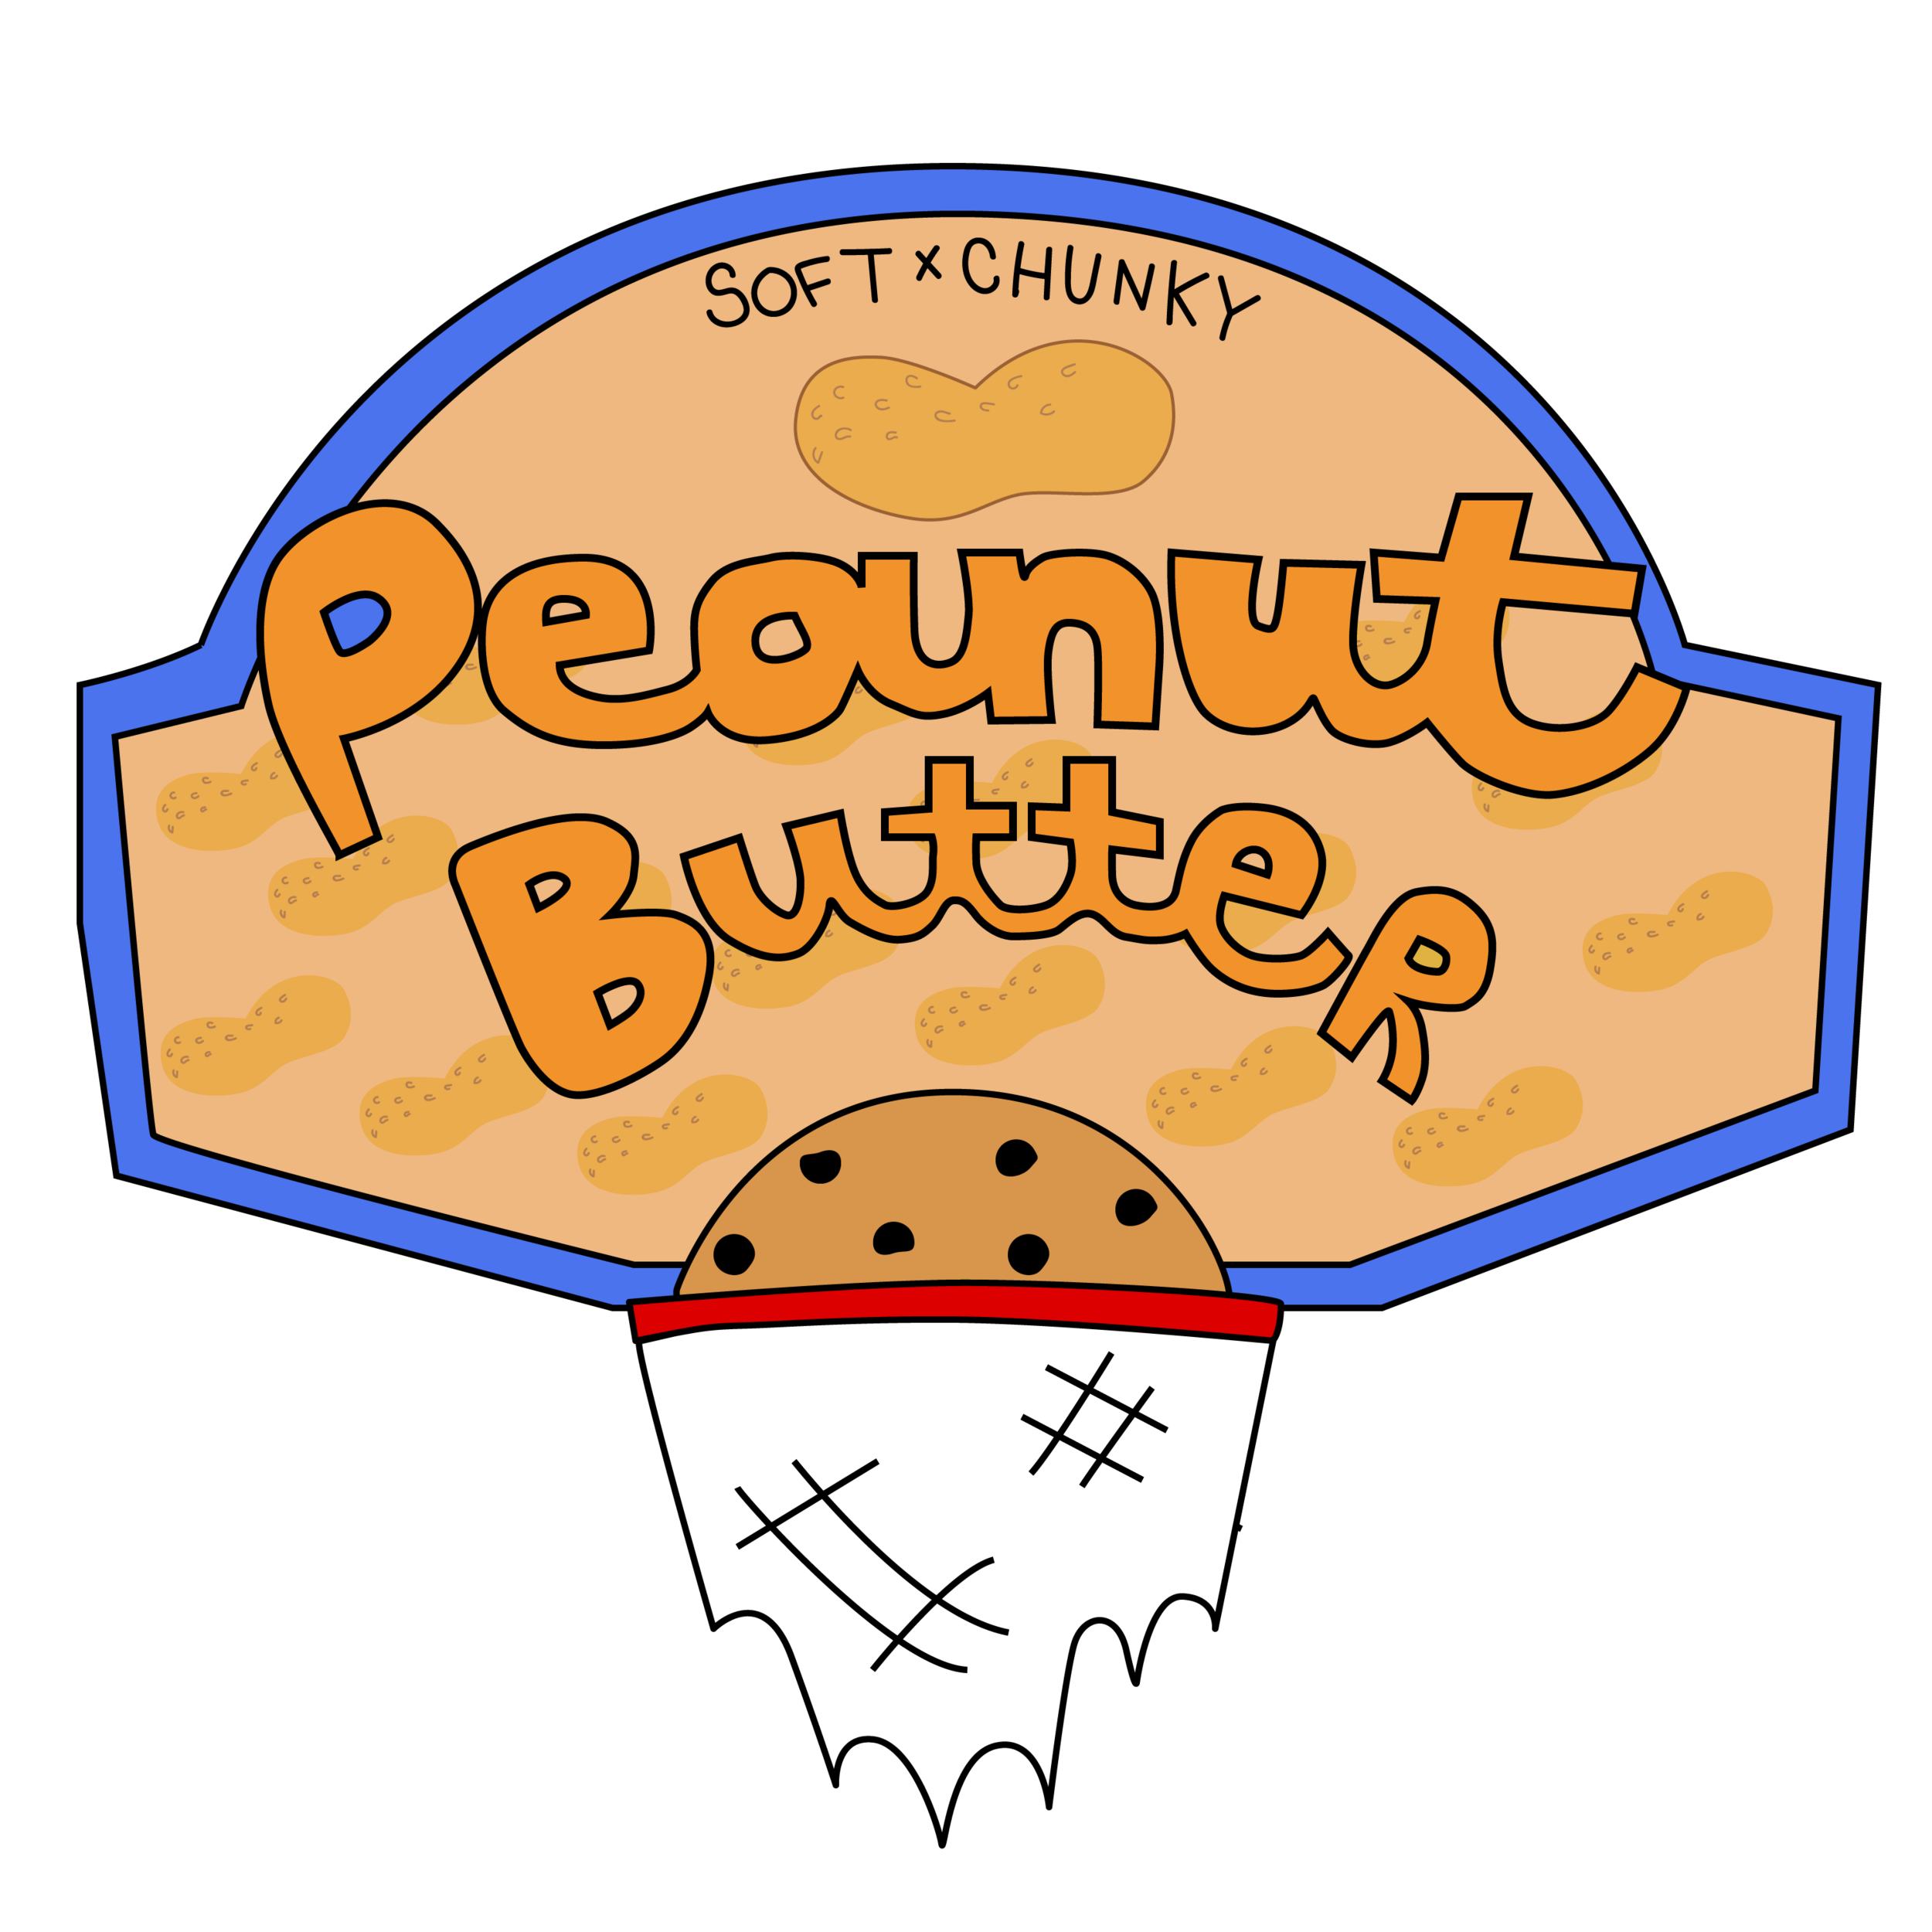 Soft Chunky Peanut Butter - Smooth and silky, this team plays the iso like no other. Better be able to adapt or get ready to suffer a jarring (get it?) defeat.